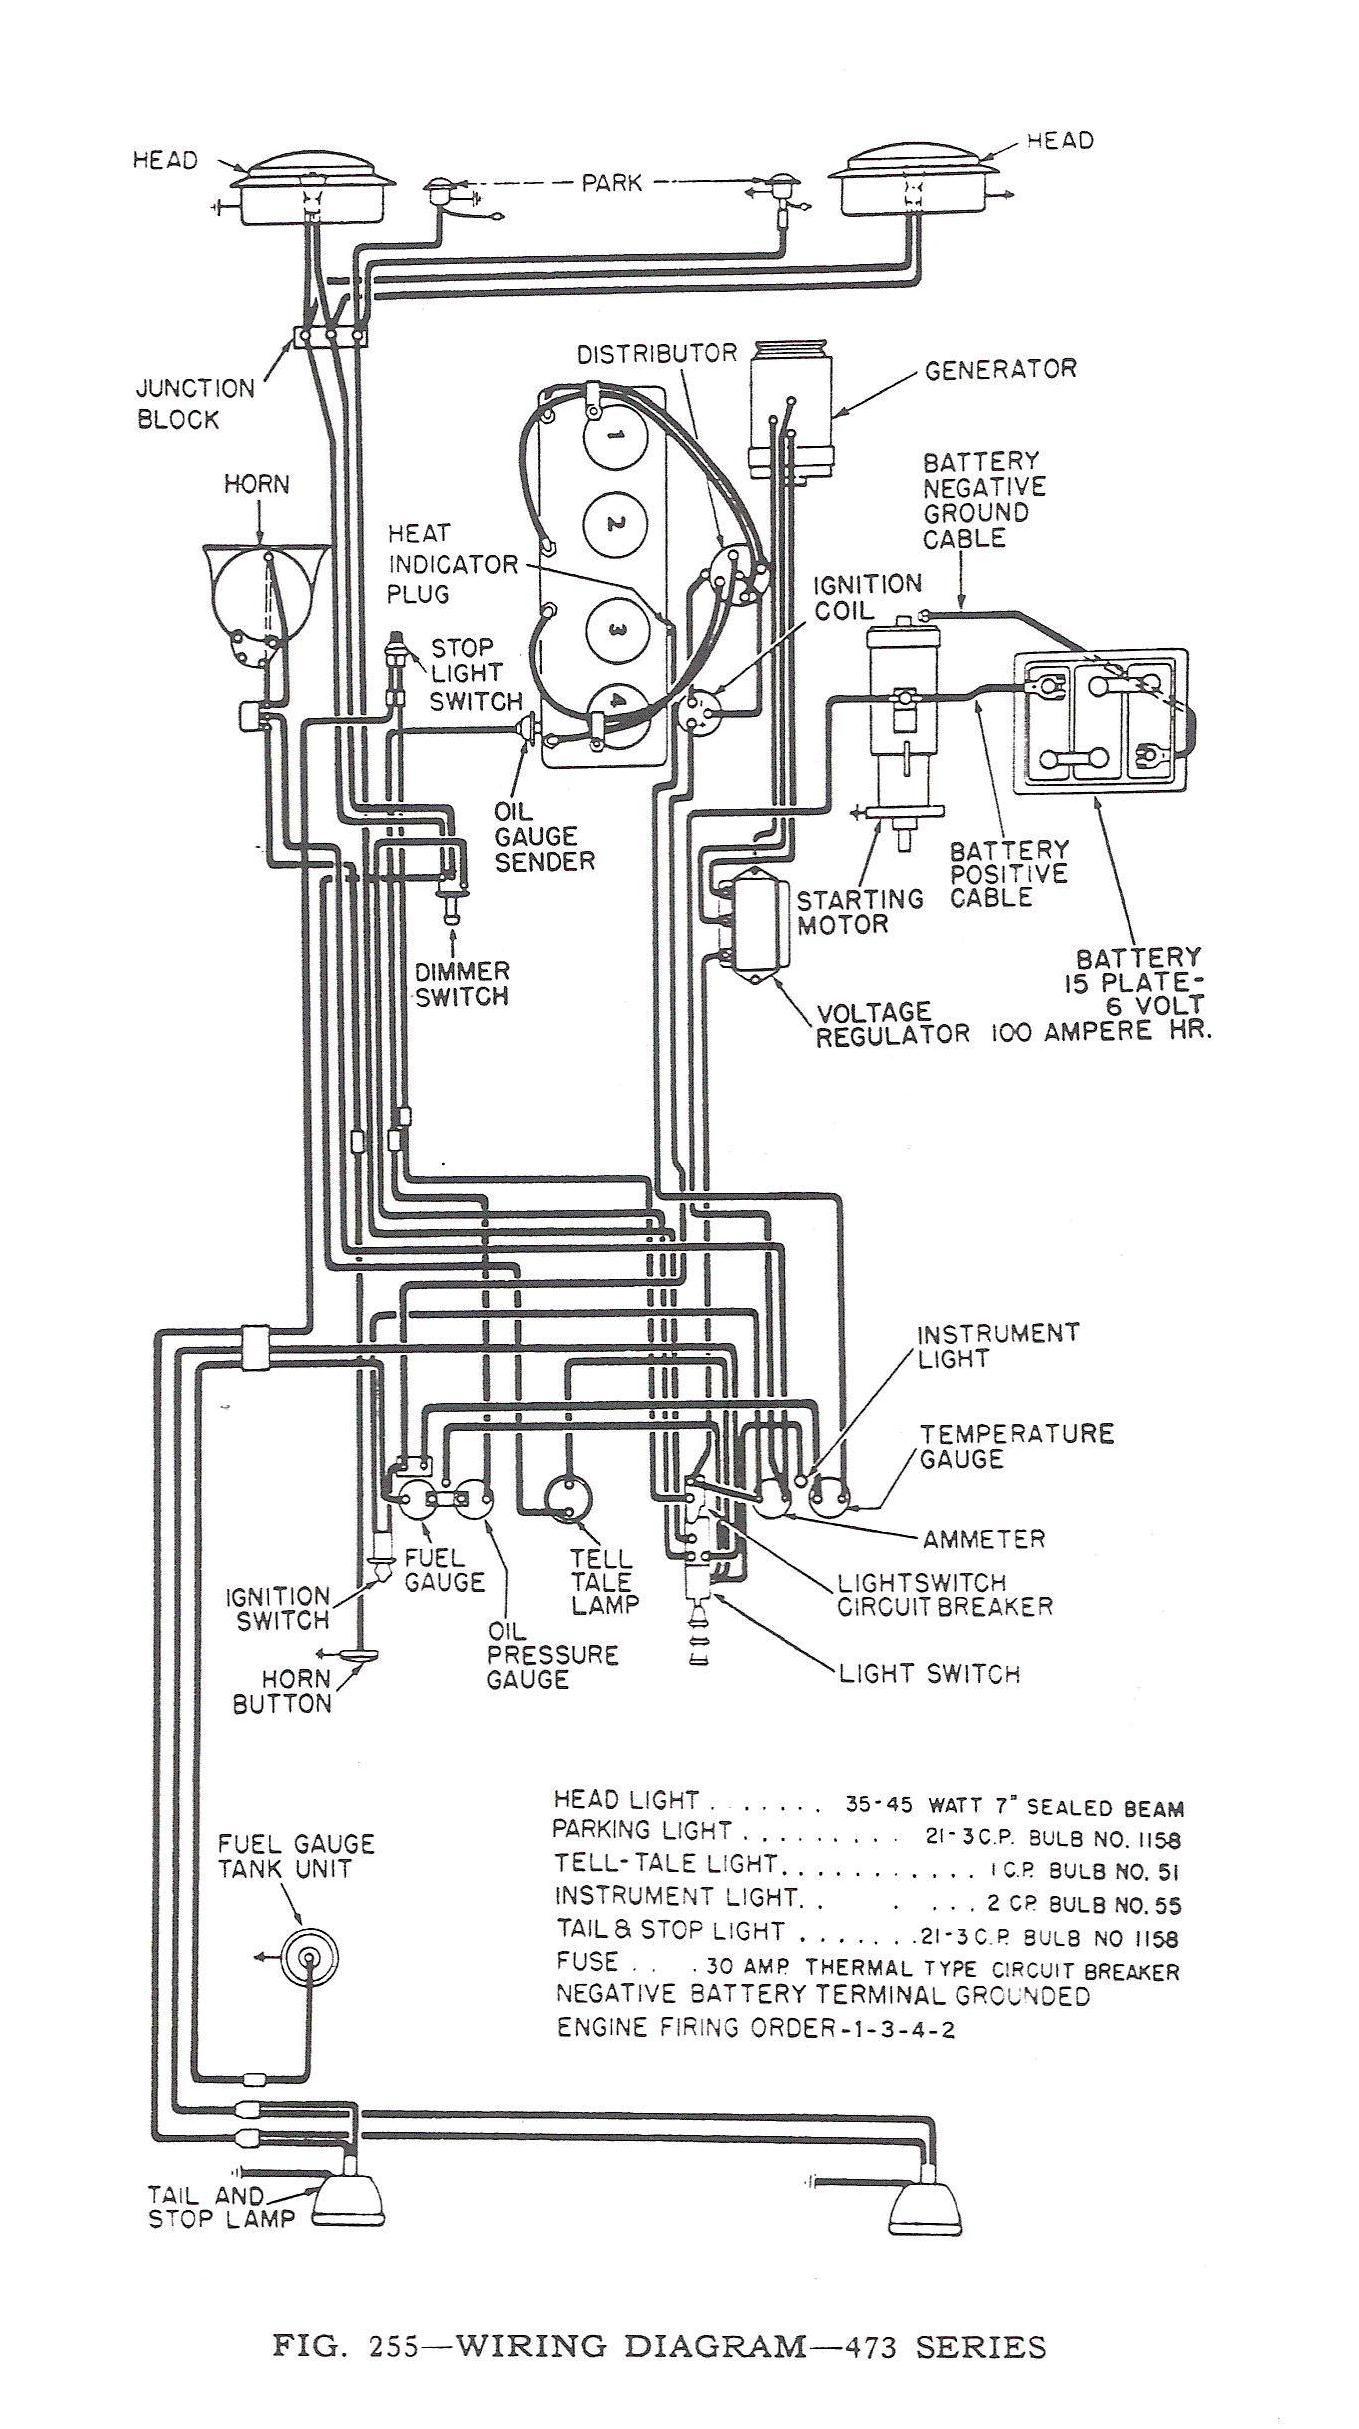 1952 Jeep Series 473 Wiring Diagrams Google Search Sathya 4x4 Diagram